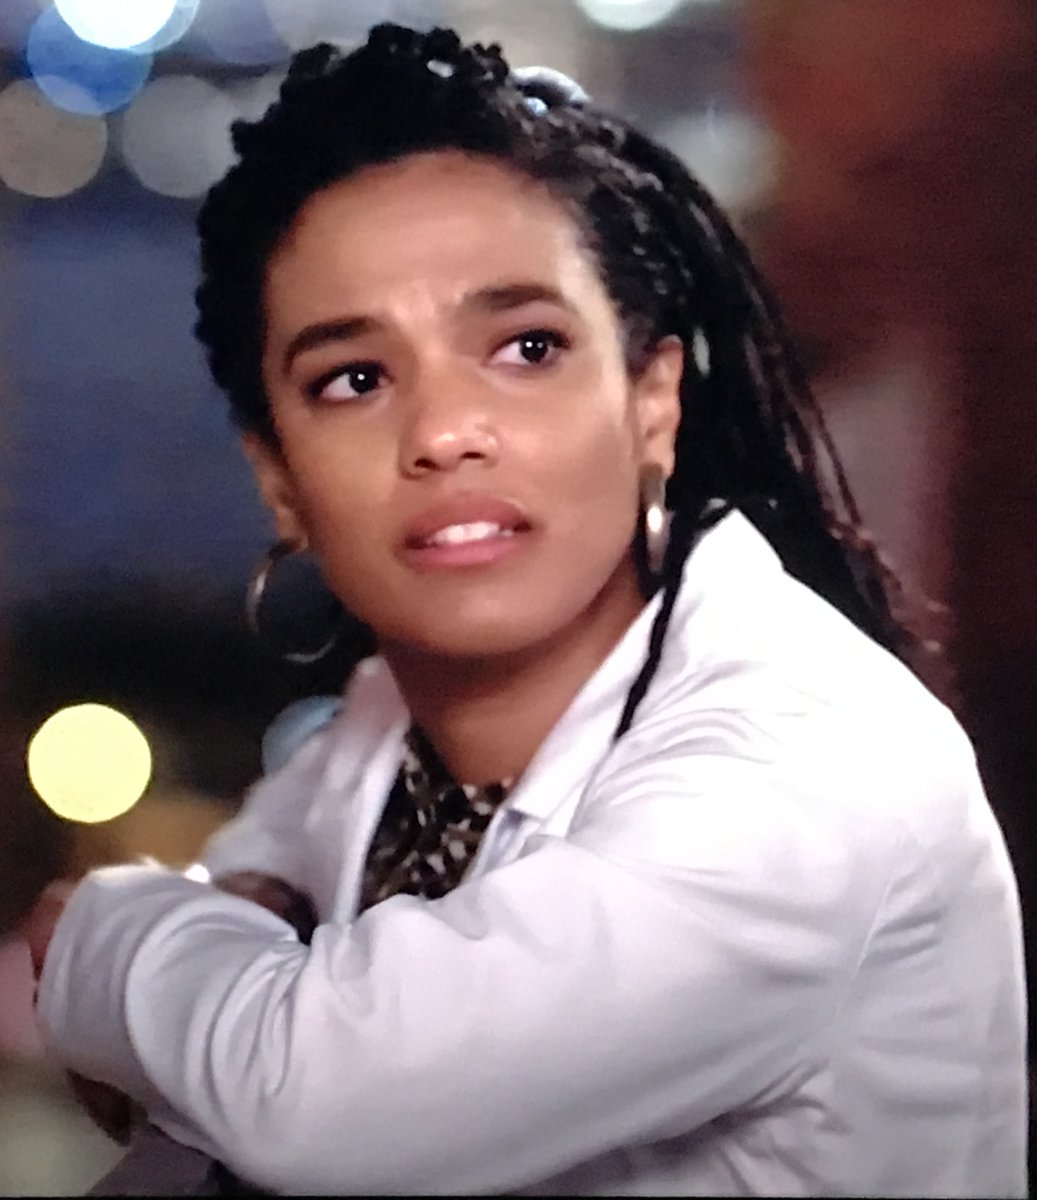 @LeeshiPeeshi They ARE endgame, and yet...as a longtime #Sharpwin stan, will I be dragged by the fandom if I admit that Helen also has a certain intellectual/professional chemistry with Dr. Shin...? 😬😏 #NewAmsterdam @NBCNewAmsterdam